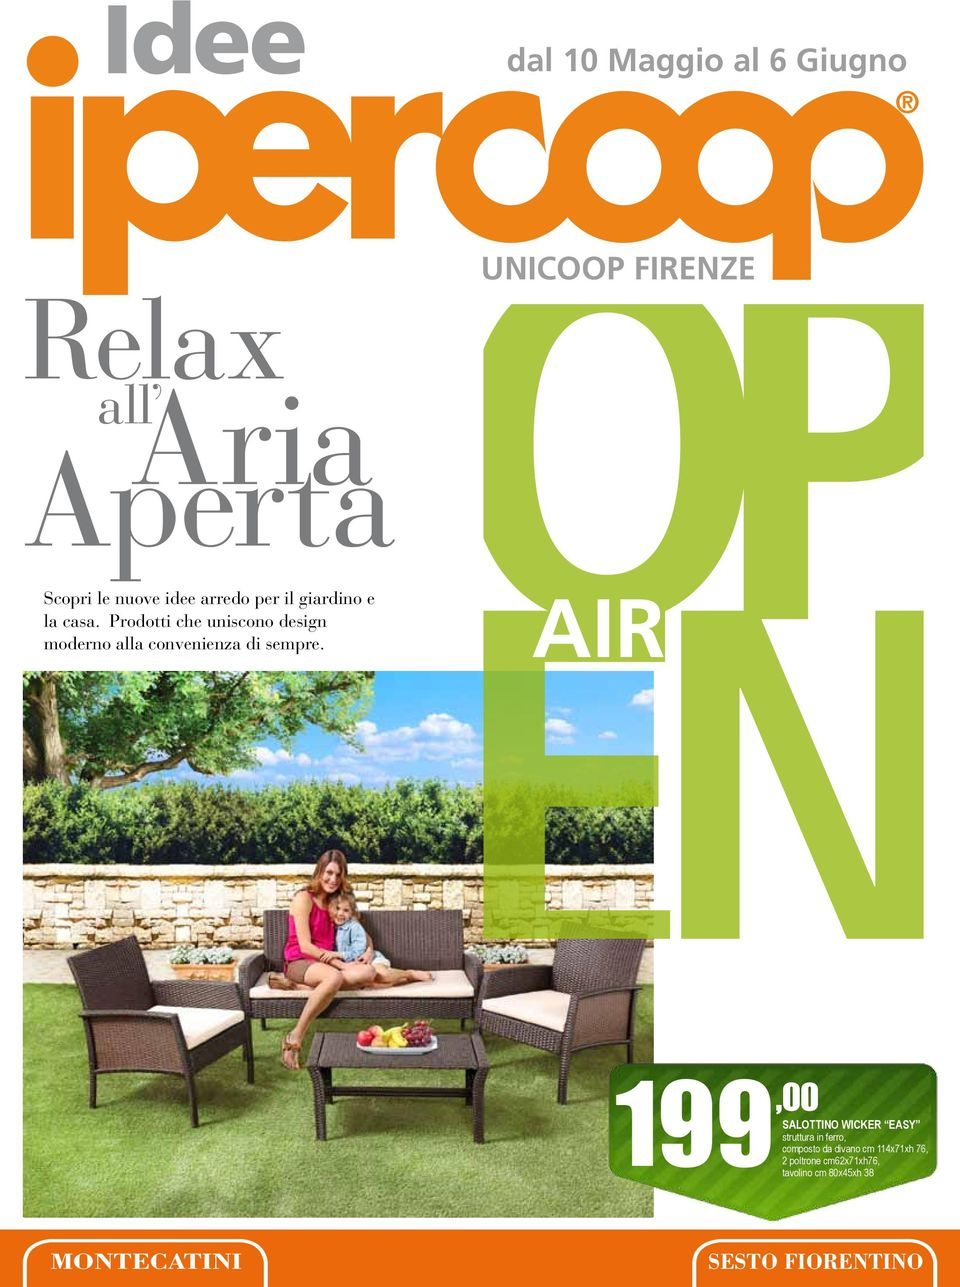 op UNICOOP FIRENZE en AIR 199,00 SALOTTINO WICKER EASY struttura in ferro, composto da